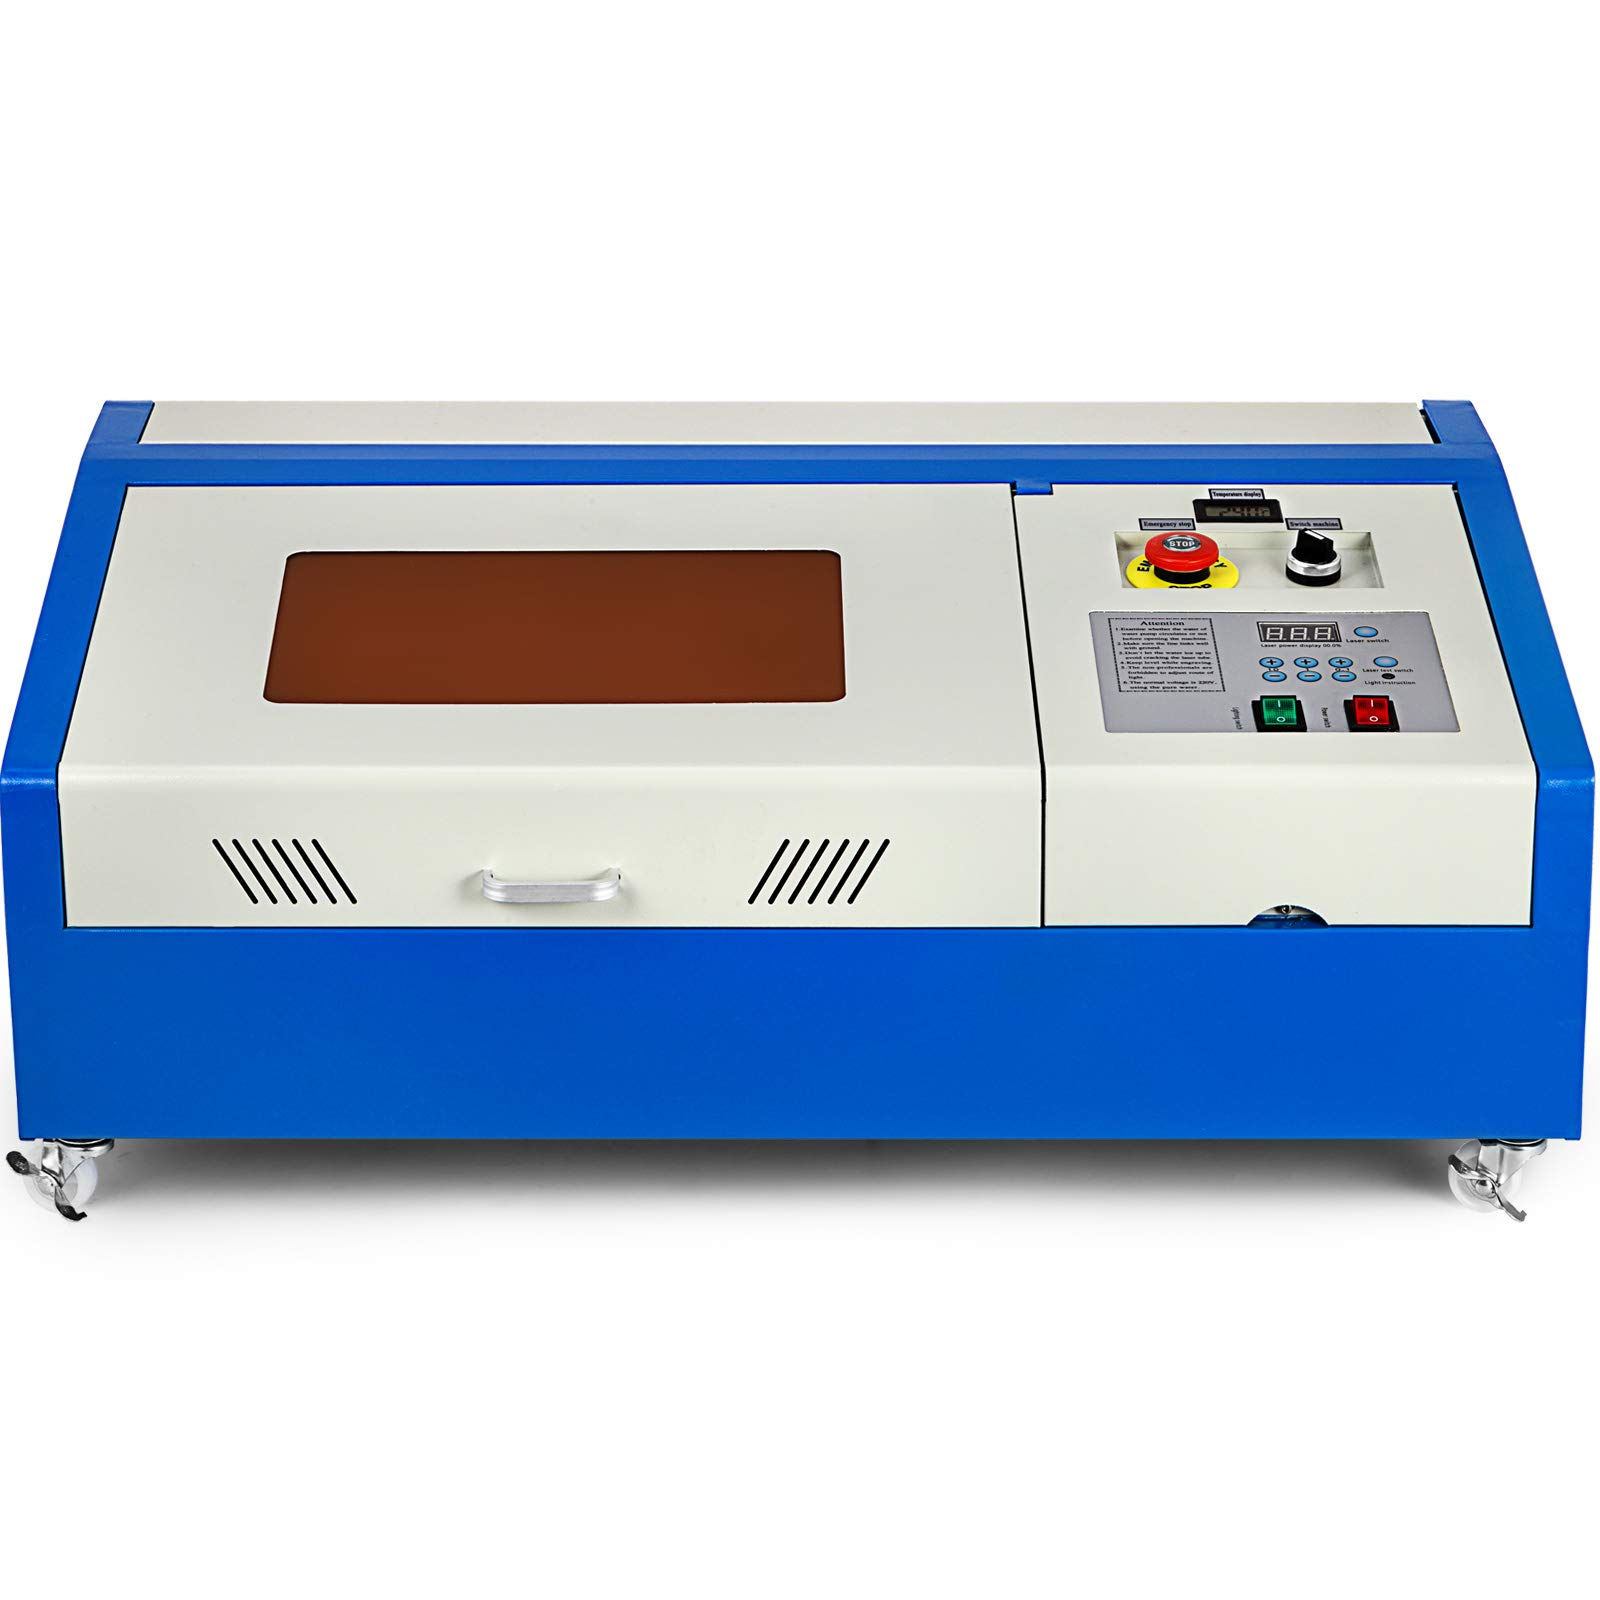 Mophorn Laser Engraving Machine 40W CO2 Laser Engraver 12x8 Inch Laser Cutting Machine USB Port LCD Display with Rotate Wheels(40W 300x200) by Mophorn (Image #4)